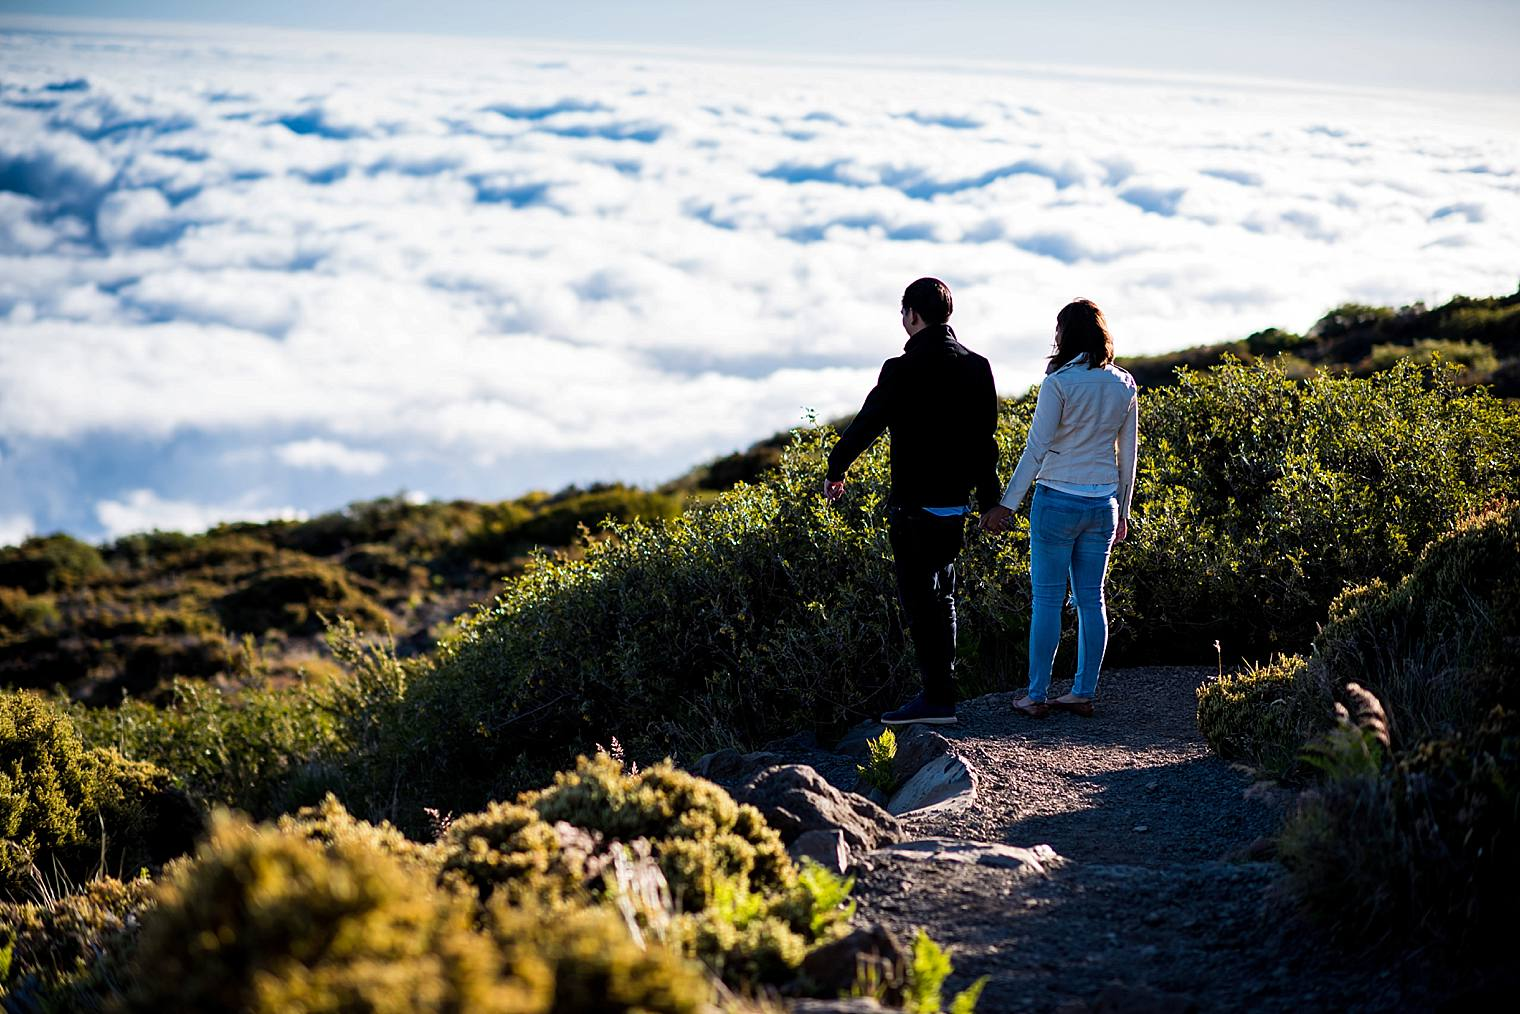 Engaged on a volcano in maui above the clouds